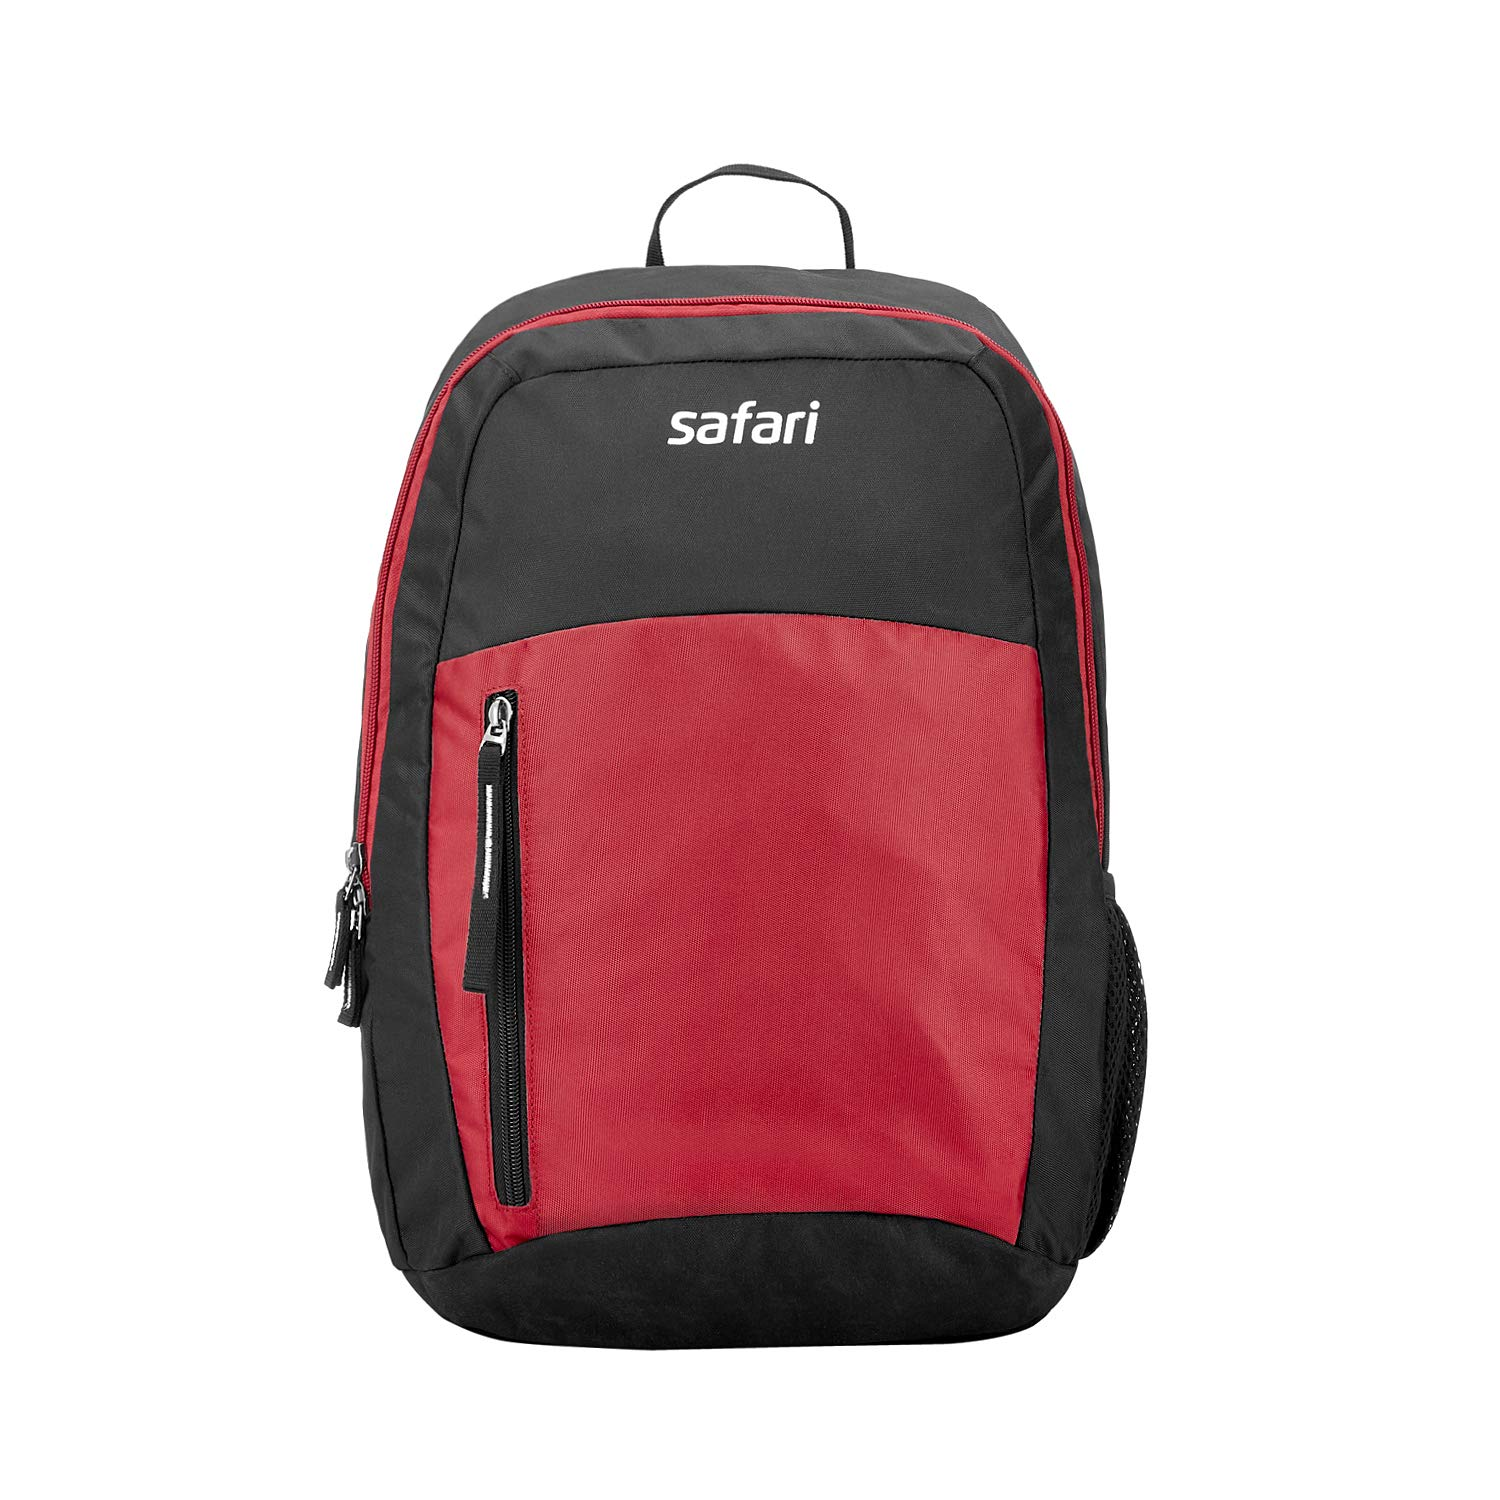 Safari 26 Ltrs Red Casual Backpack